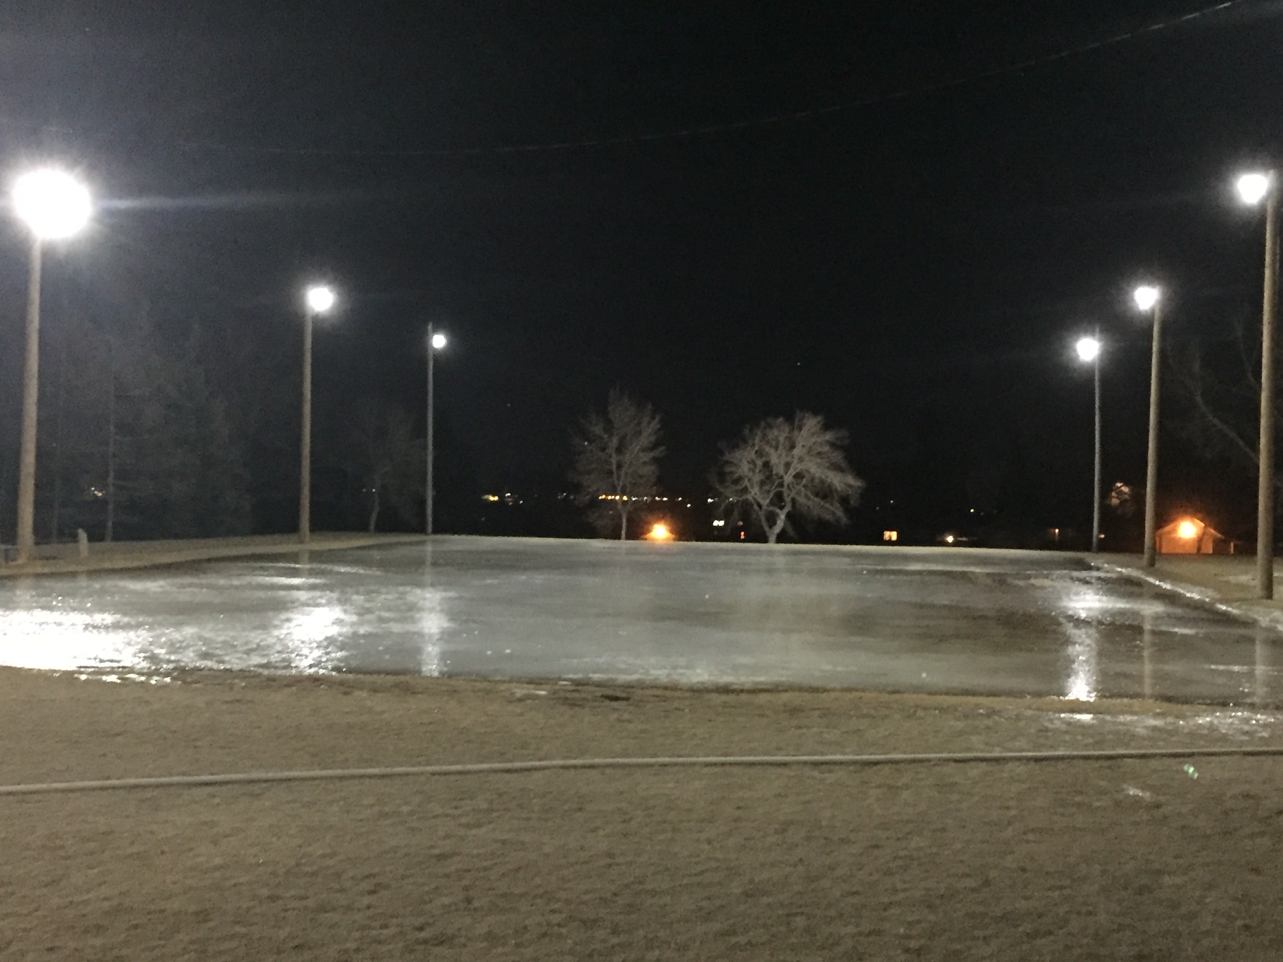 Enmax and the federation of calgary communities for their financial support in replacing our outdoor ice rink light fixtures with new led lighting